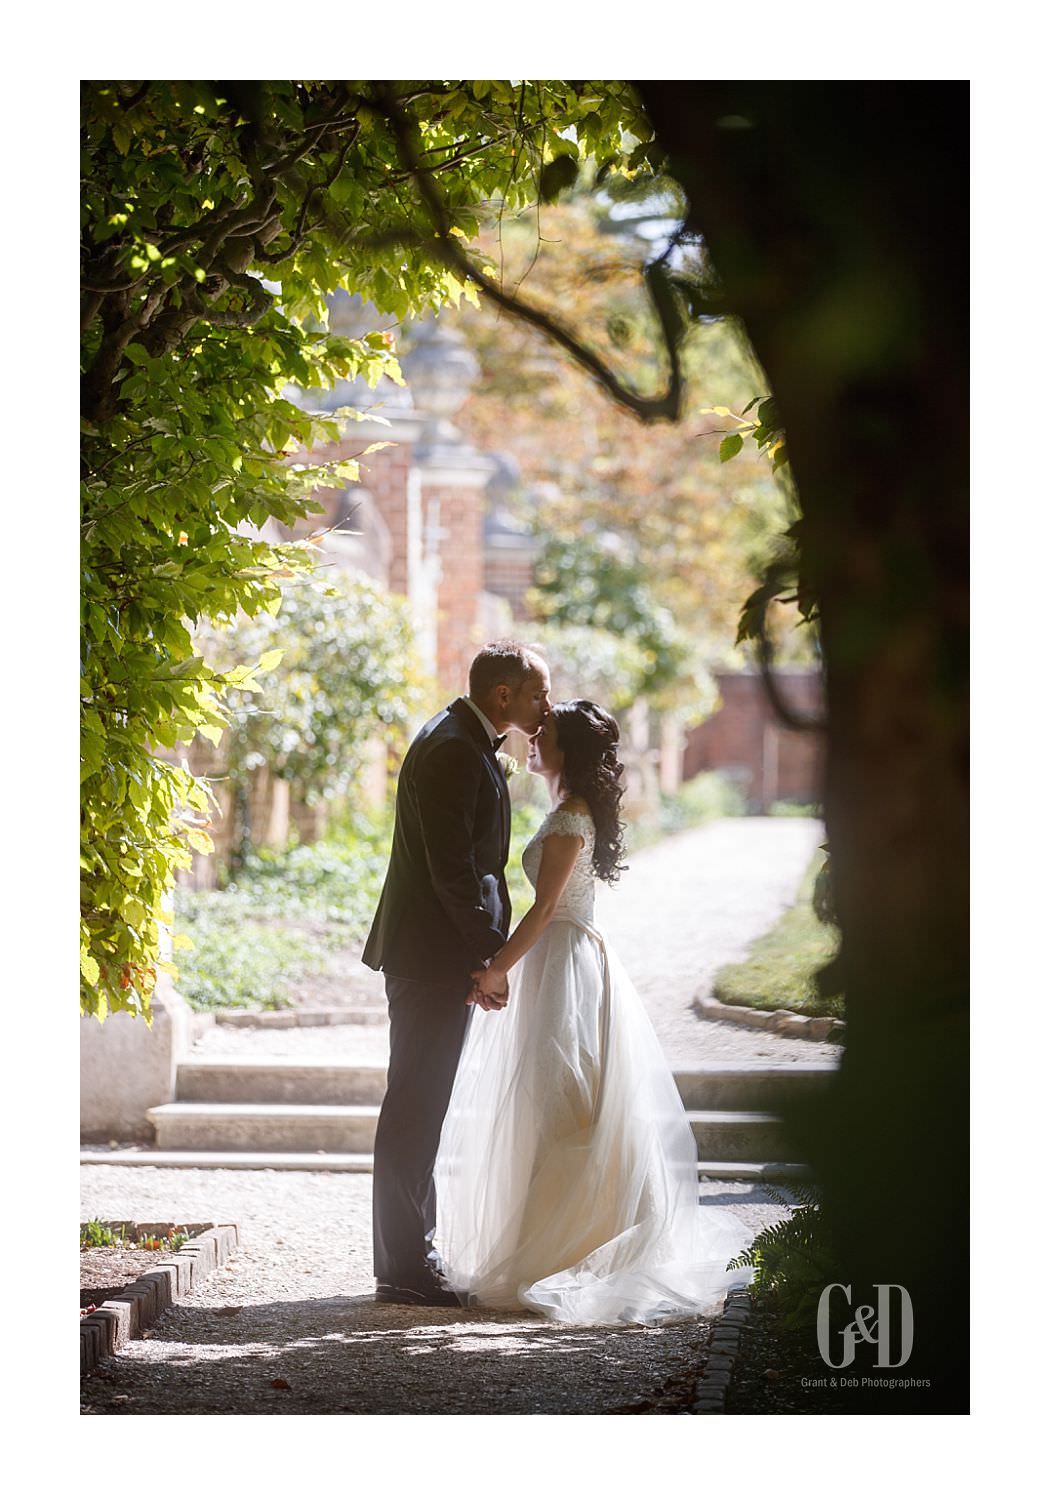 colonial williamsburg wedding photographers - williamsburg inn wedding photographers - colonial williamsburg wedding photographers - williamsburg inn wedding photographers